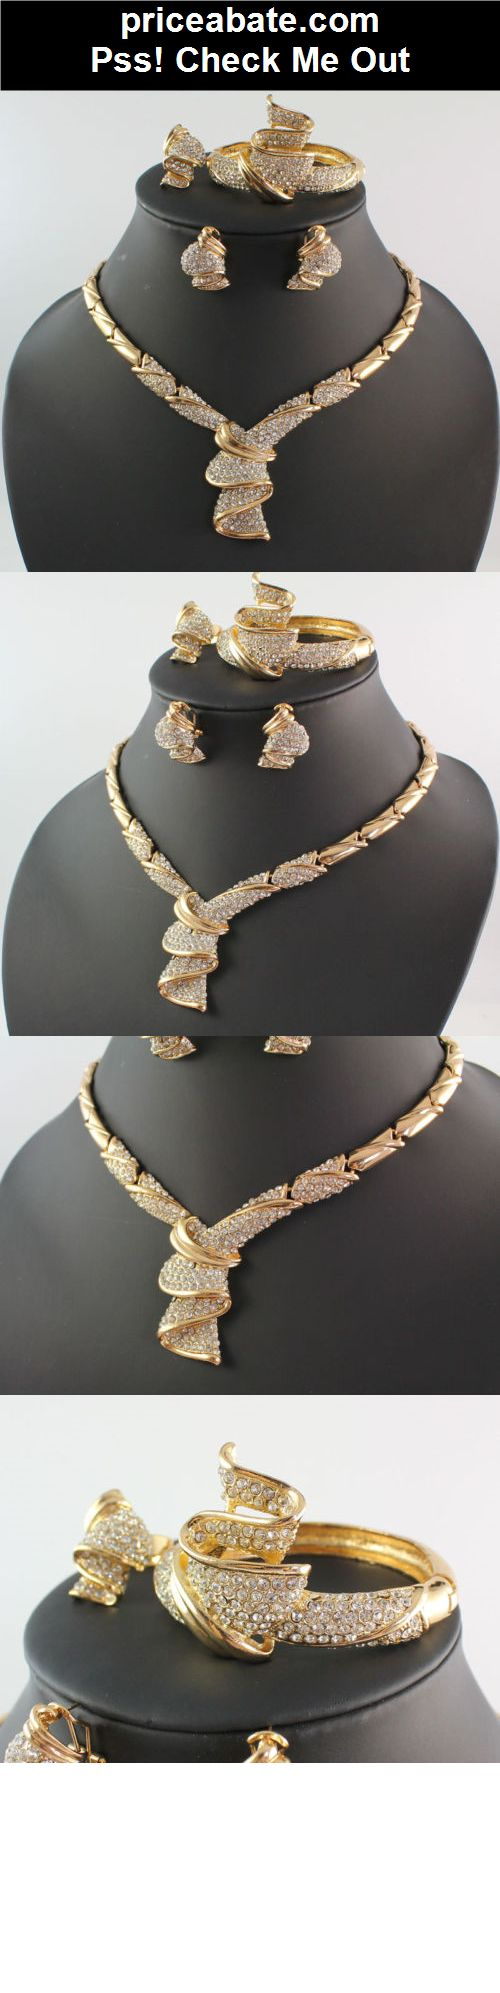 Fashion Women 18K Gold Plated Africa Dubai Wedding Party Necklace Jewelry Set - #priceabate! BUY IT NOW ONLY $13.04